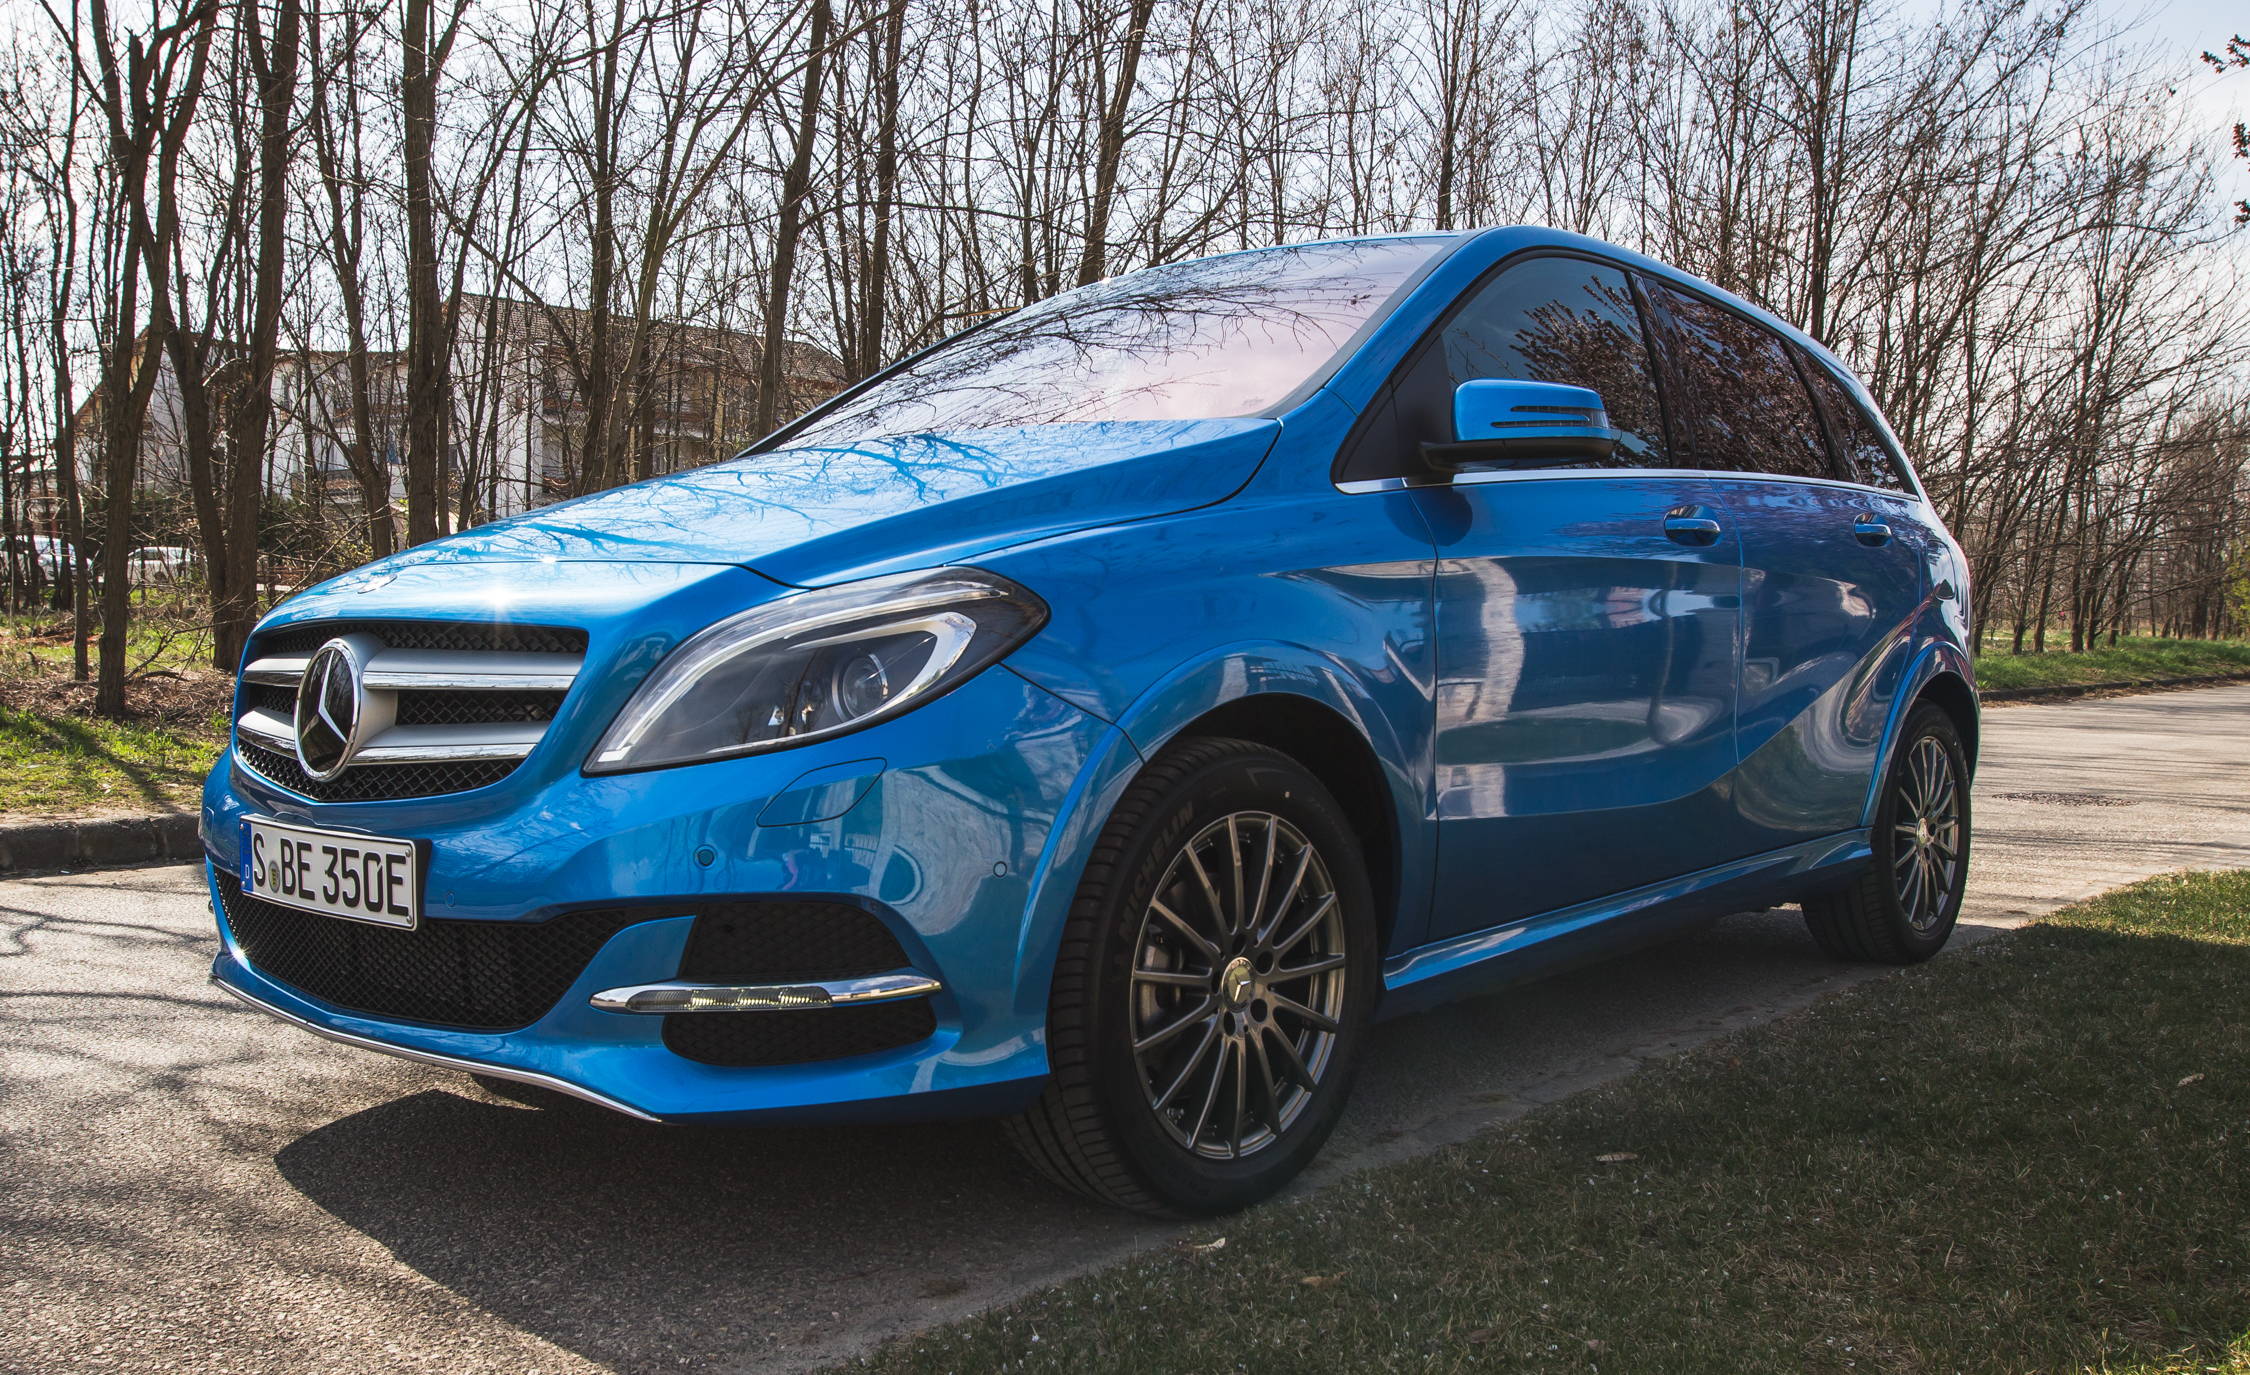 2017 Mercedes Benz B Class EV Exterior View Front And Side (View 23 of 24)